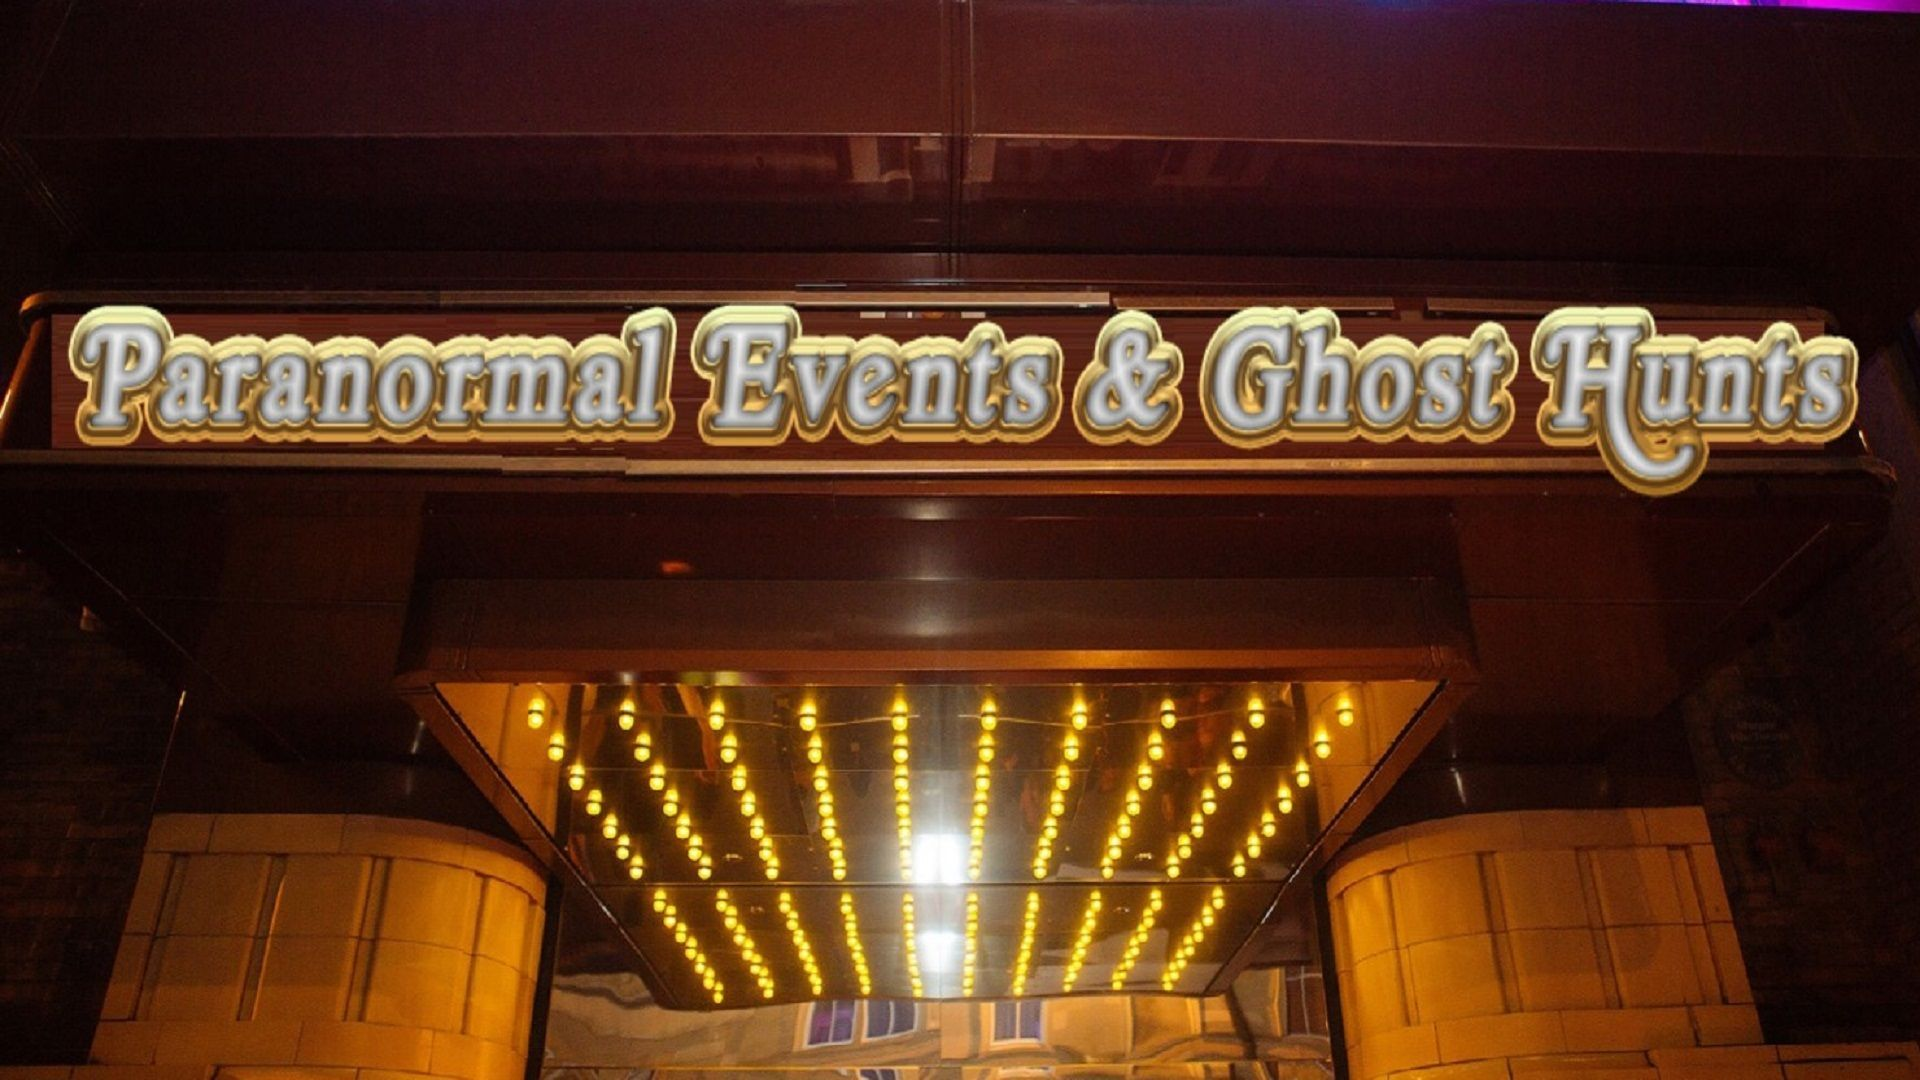 Paranormal and Ghost Hunt Events Promotion Tips!